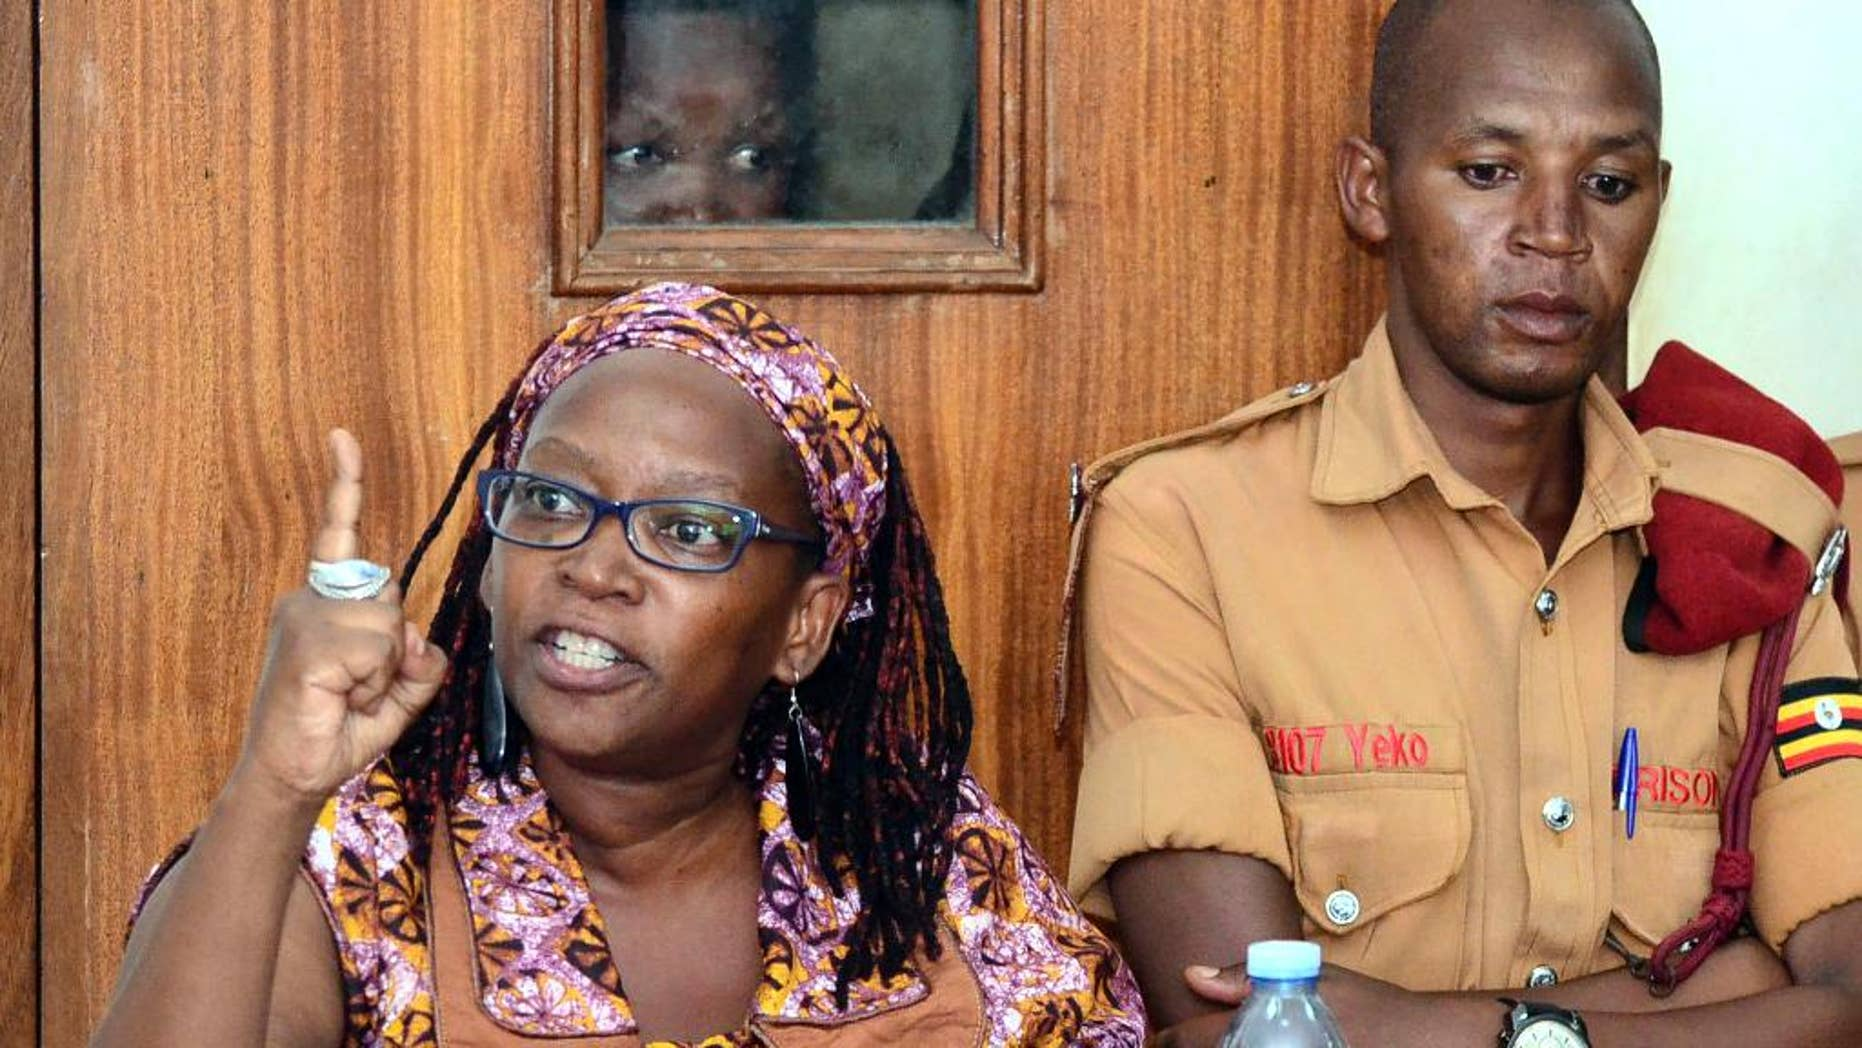 """In this photo taken on Monday April 10, 2017, Makerere University researcher Dr Stella Nyanzi, left, gestures in the dock at Buganda Road Court in the capital Kampala, Uganda. A Ugandan academic detained for calling the country's president """"a pair of buttocks"""" resisted attempts to forcibly carry out psychiatric tests on her, her attorney said Thursday, April 13 describing the alleged incident as an attack on her dignity.(AP Photo)"""